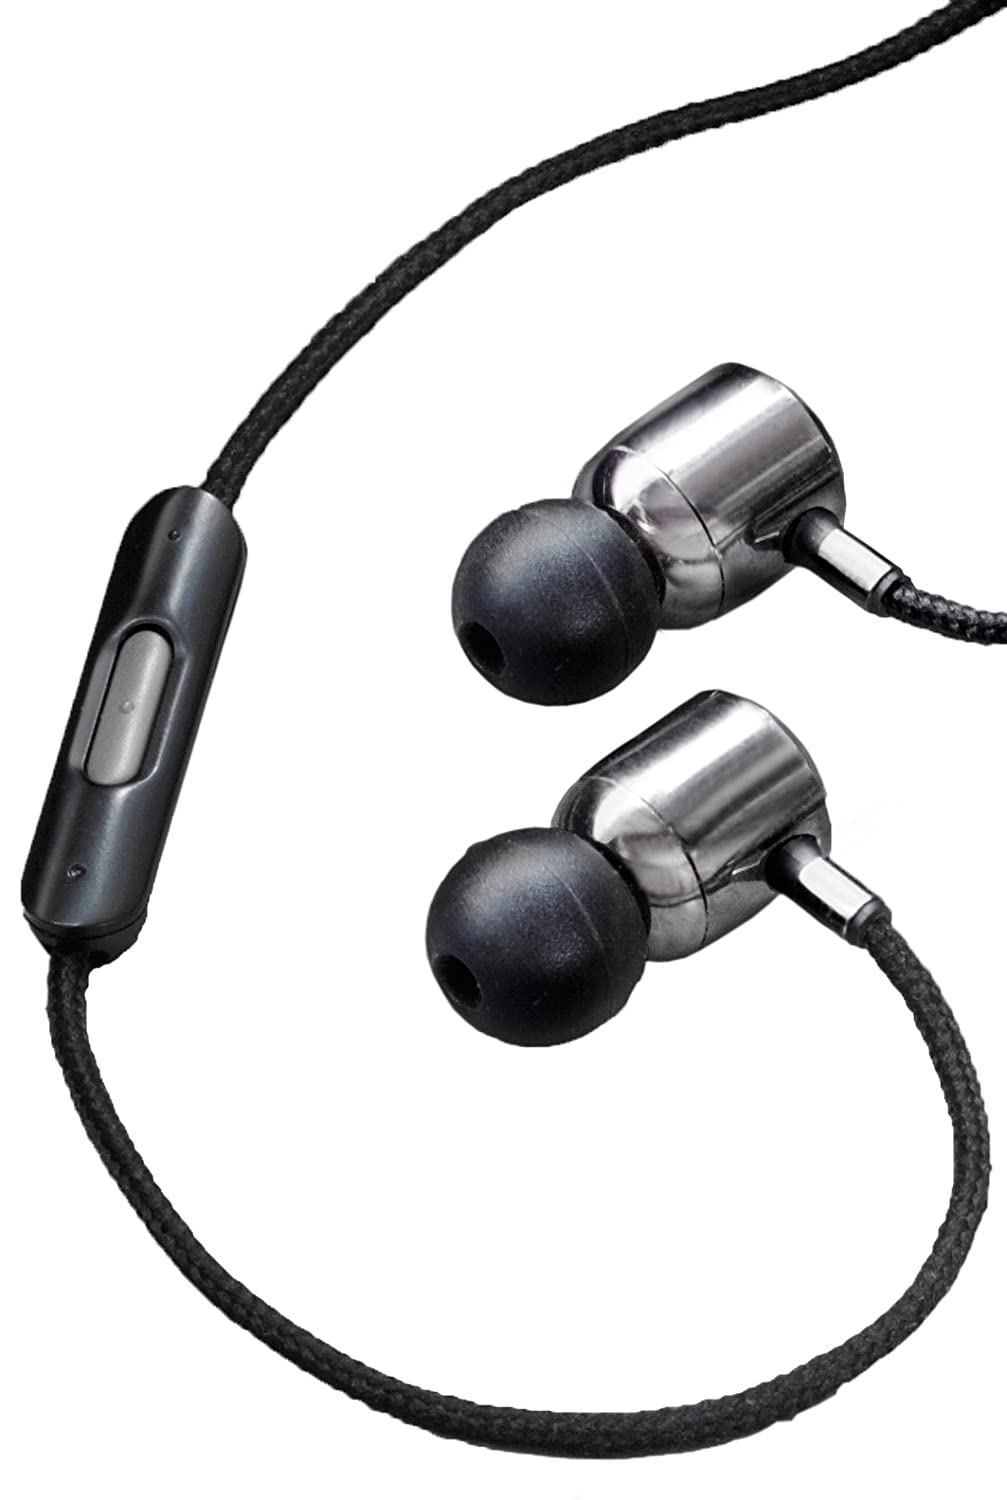 Monitor earbuds audio technica - bose earbuds large